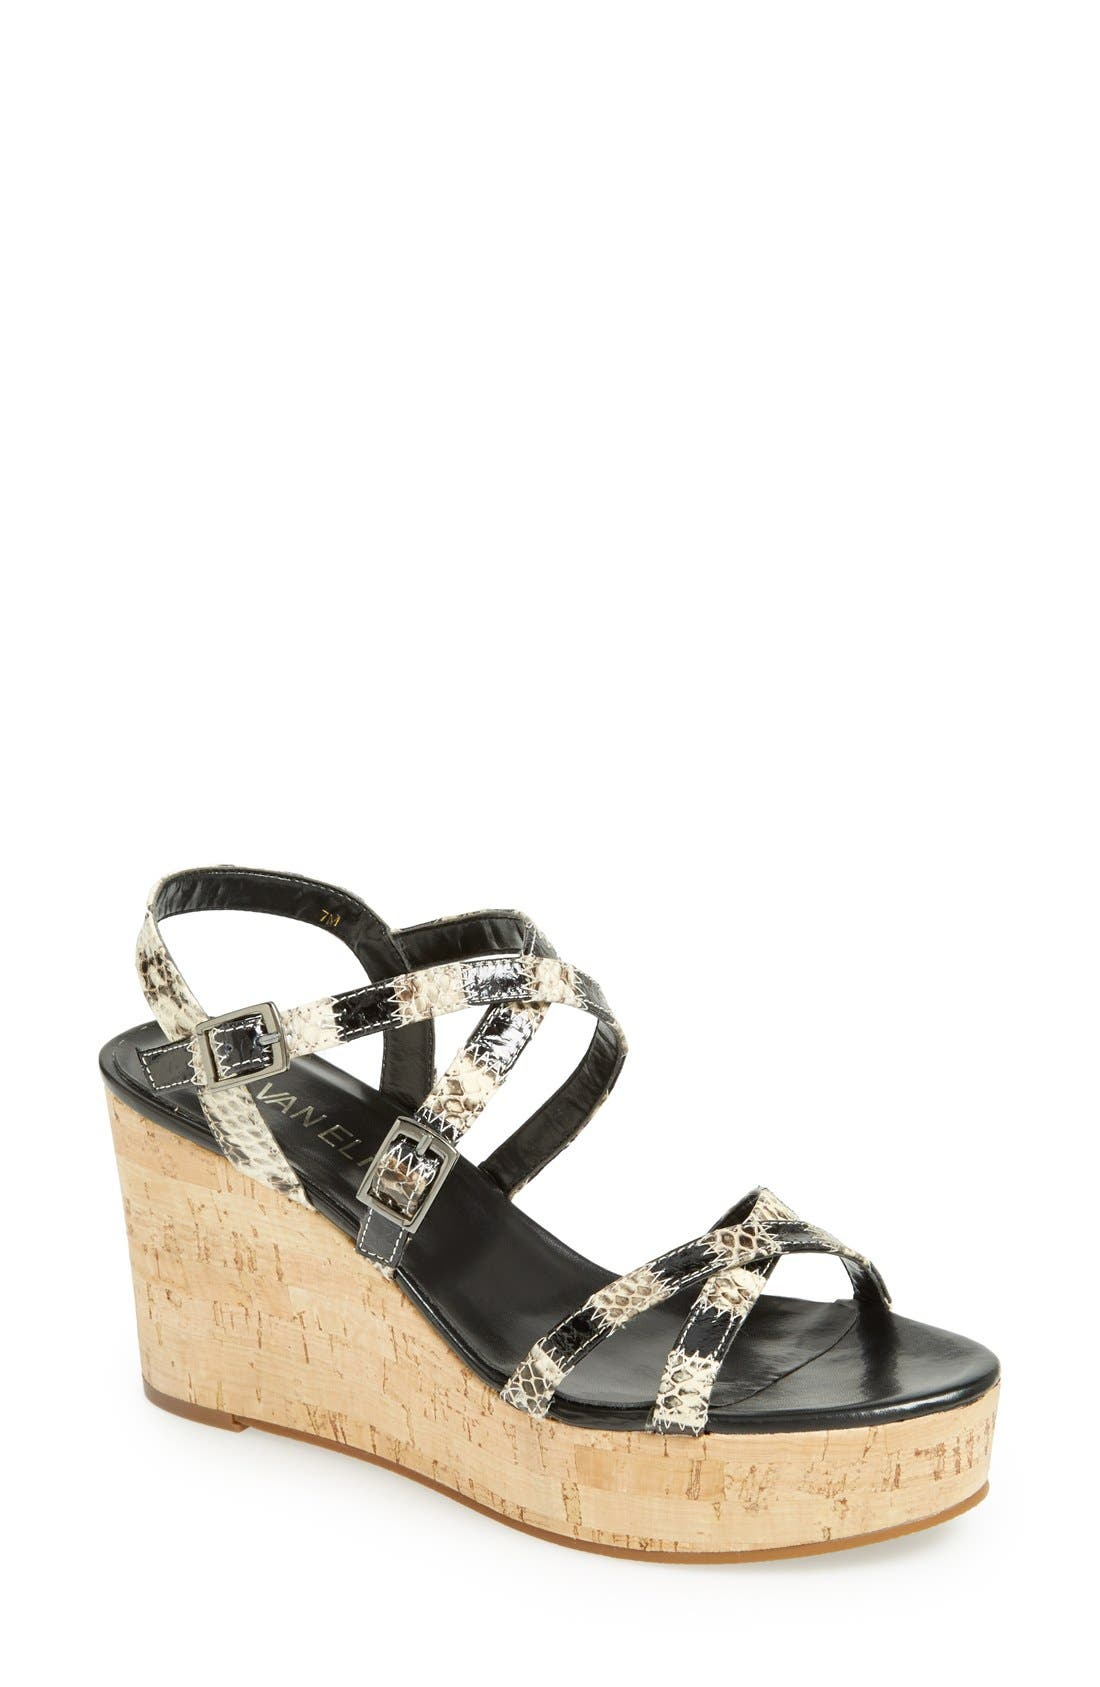 Alternate Image 1 Selected - VANELi 'Polar' Wedge Sandal